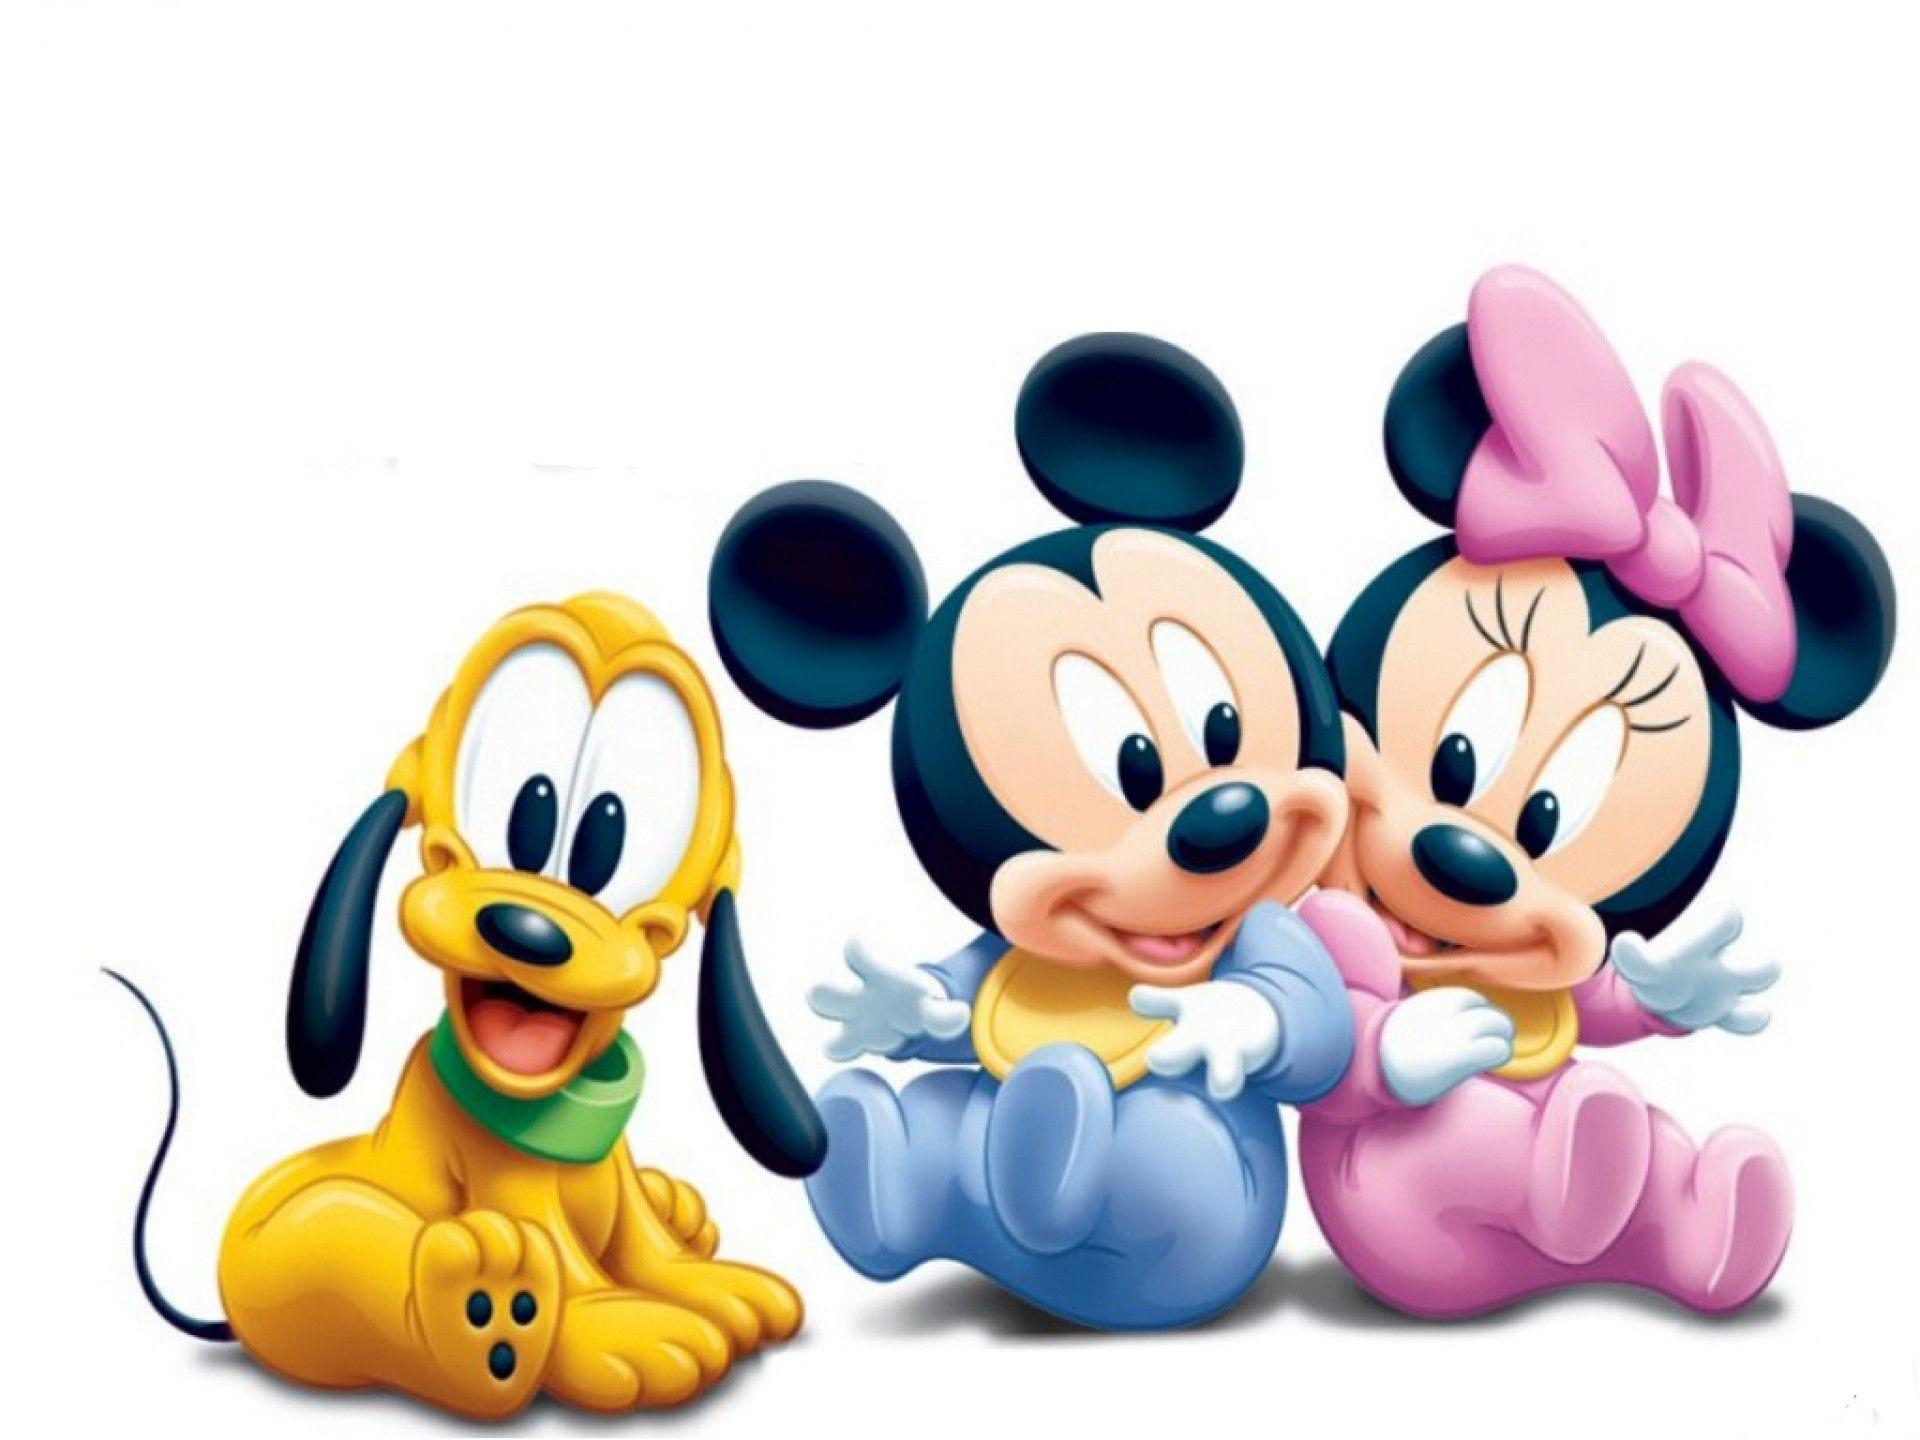 Baby Mickey Mouse Goofy And Minnie Cartoon Wallpaper 1747